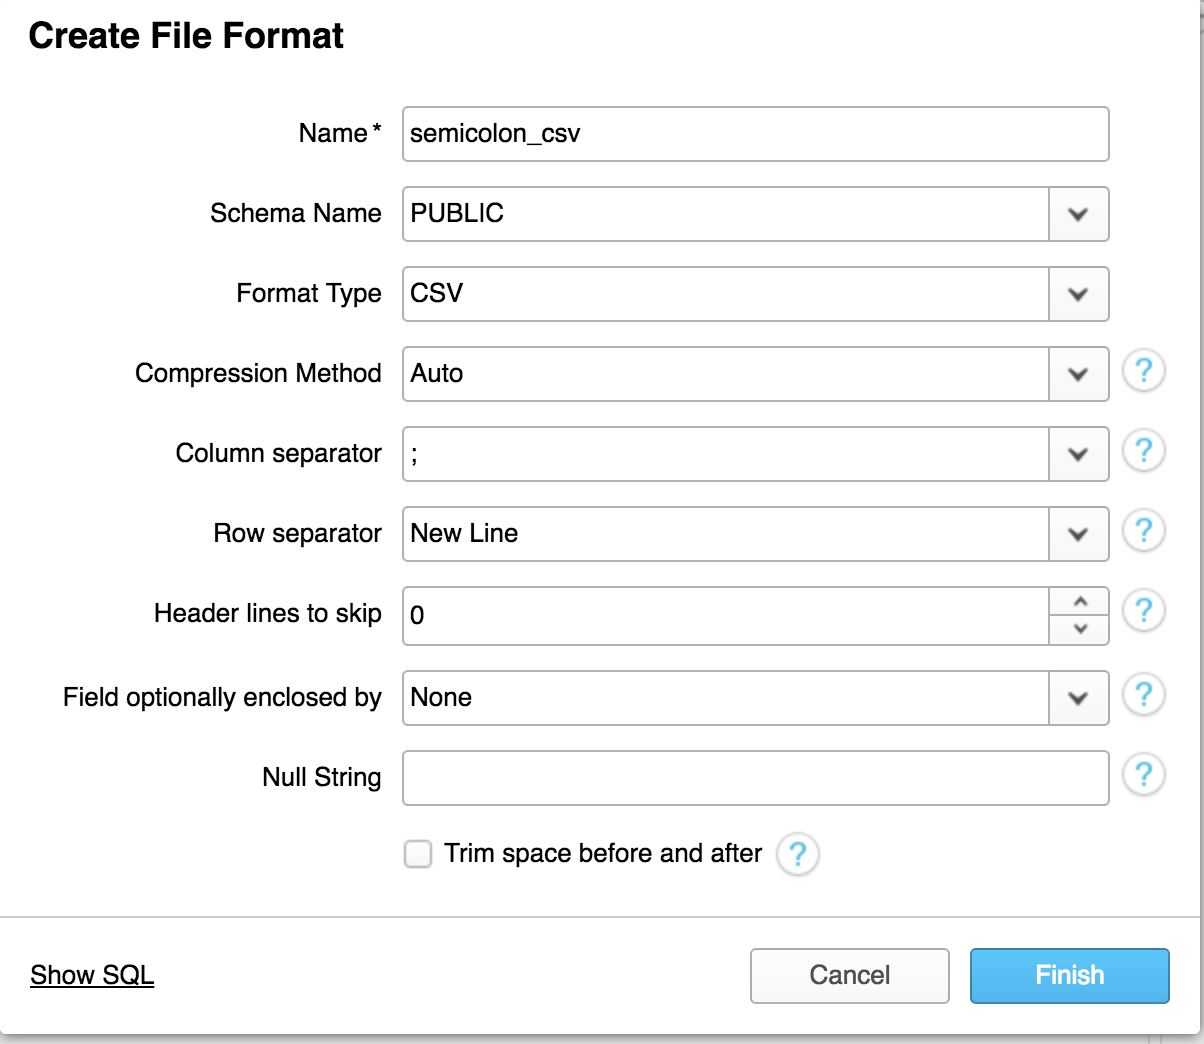 File Format creation screenshot